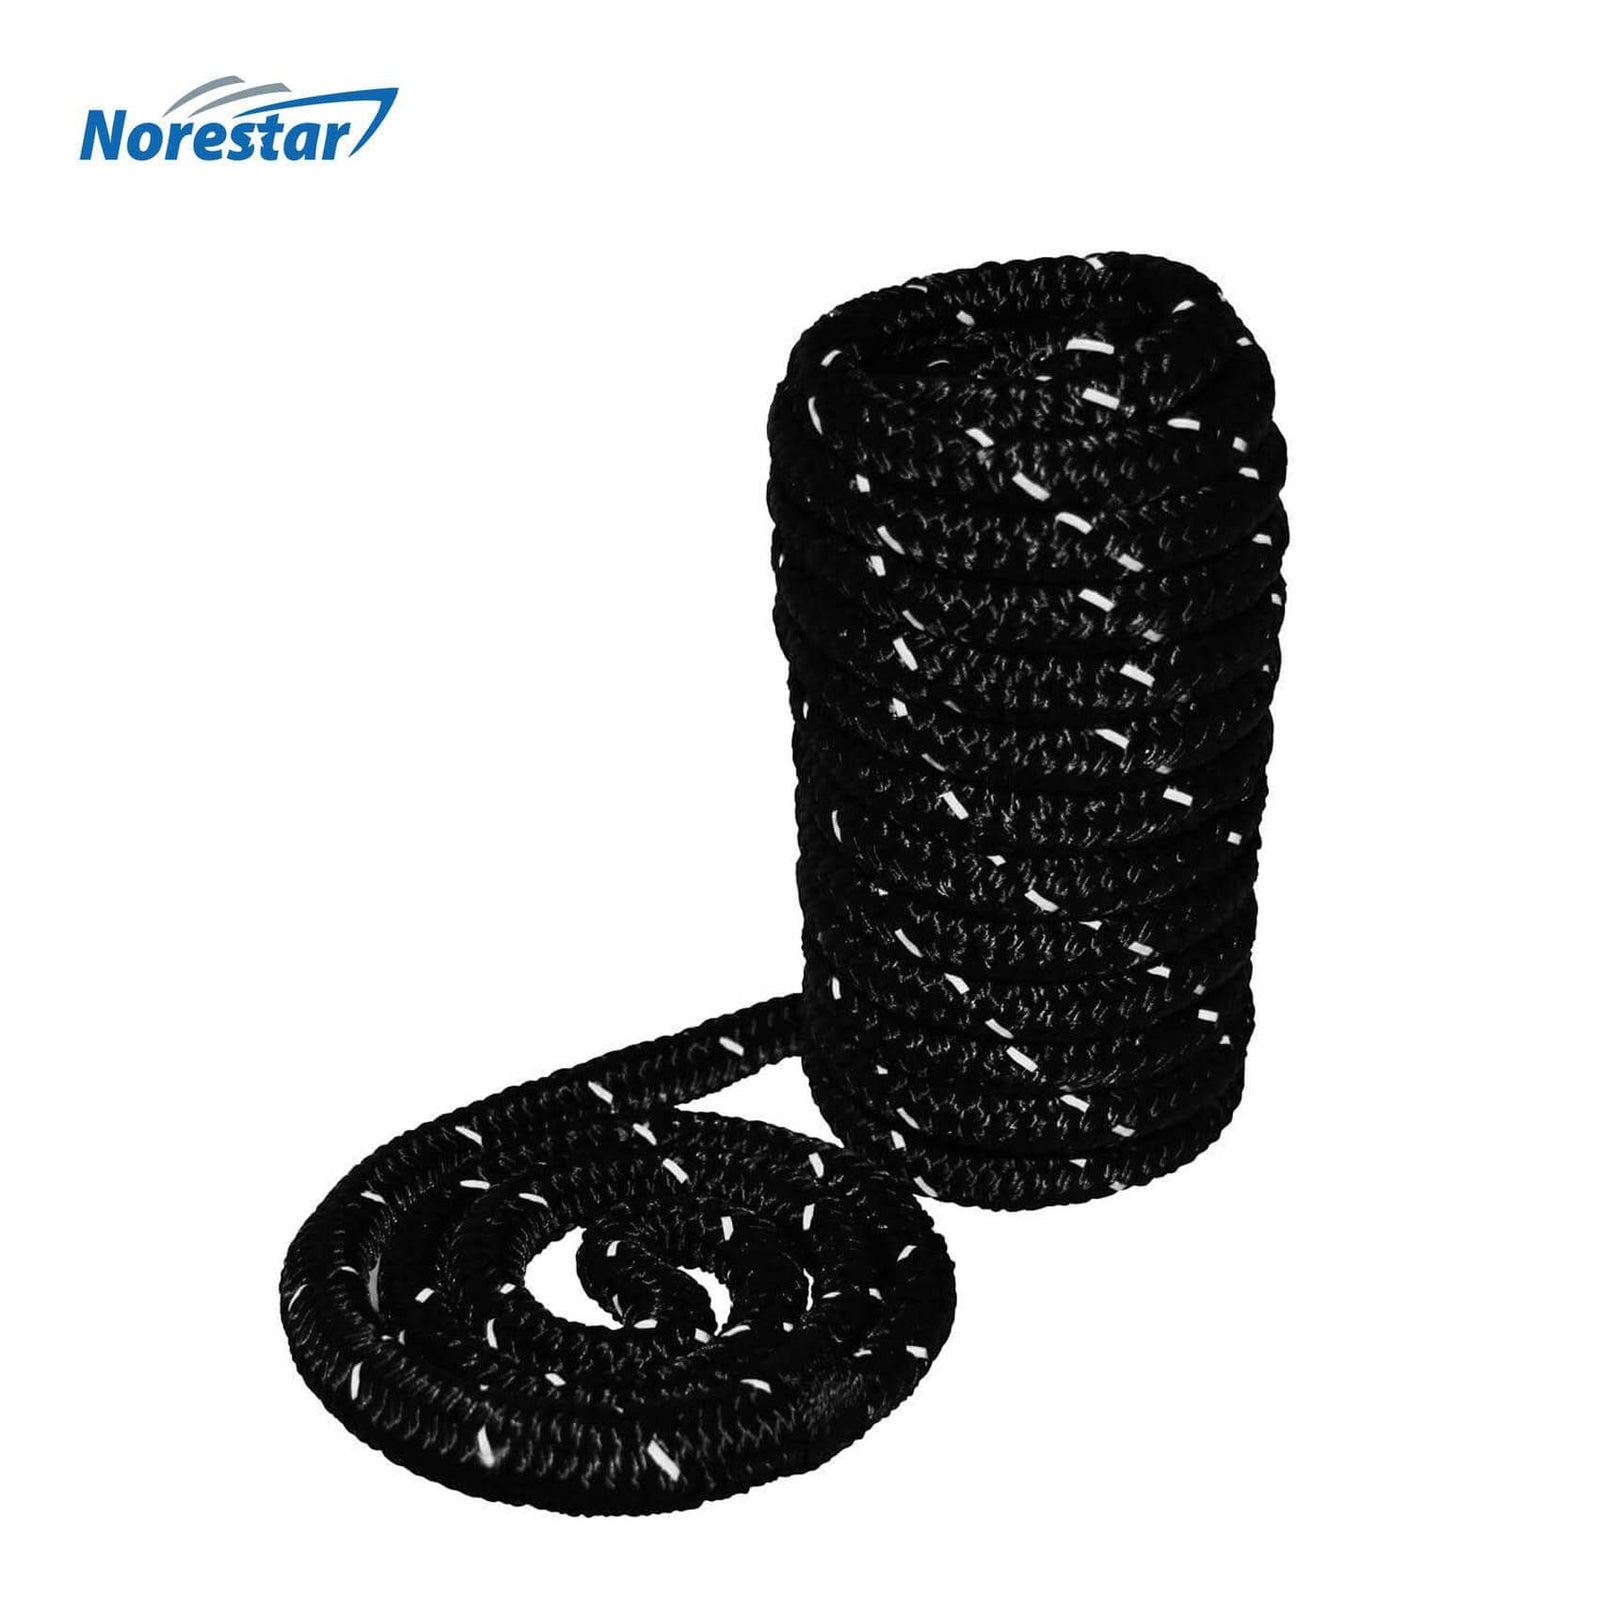 High-Visibility Reflective Braided Nylon Dock Line, Black - in Low Light